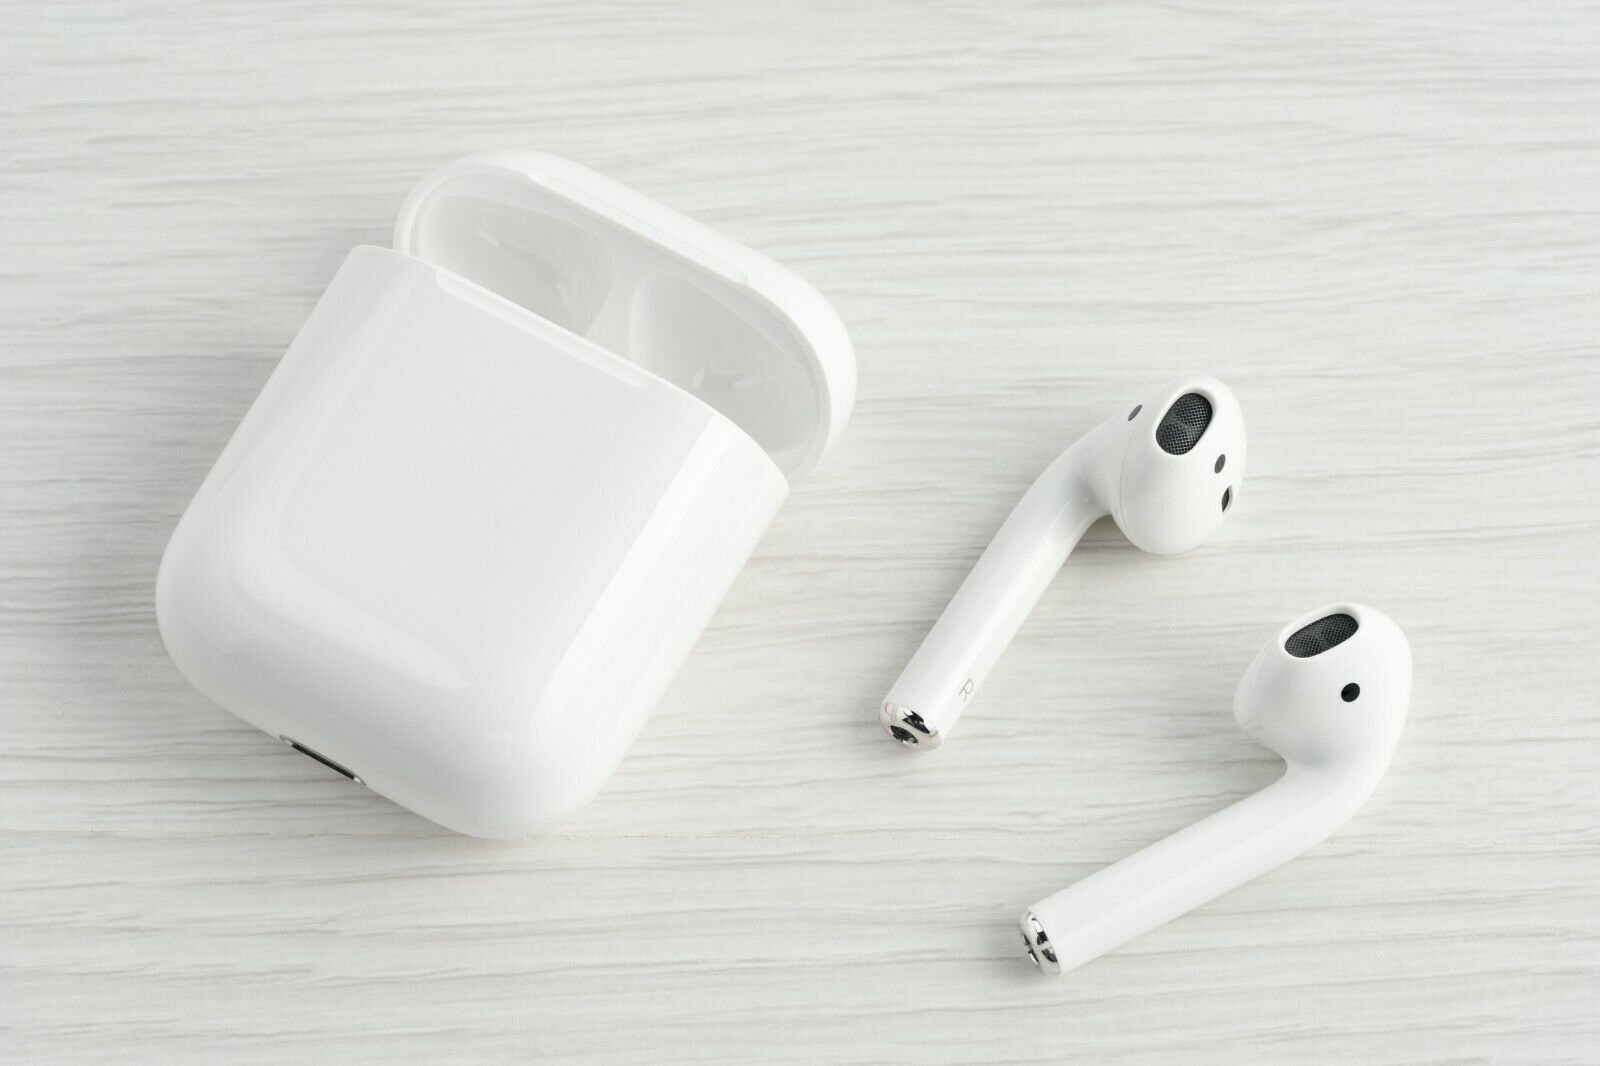 Apple Airpods 2nd Generation Wireless Earbuds Charging Case Mv7n2am A H1 Chip 2nd Ai Apple Airpods 2 Wireless Earbuds Earbuds